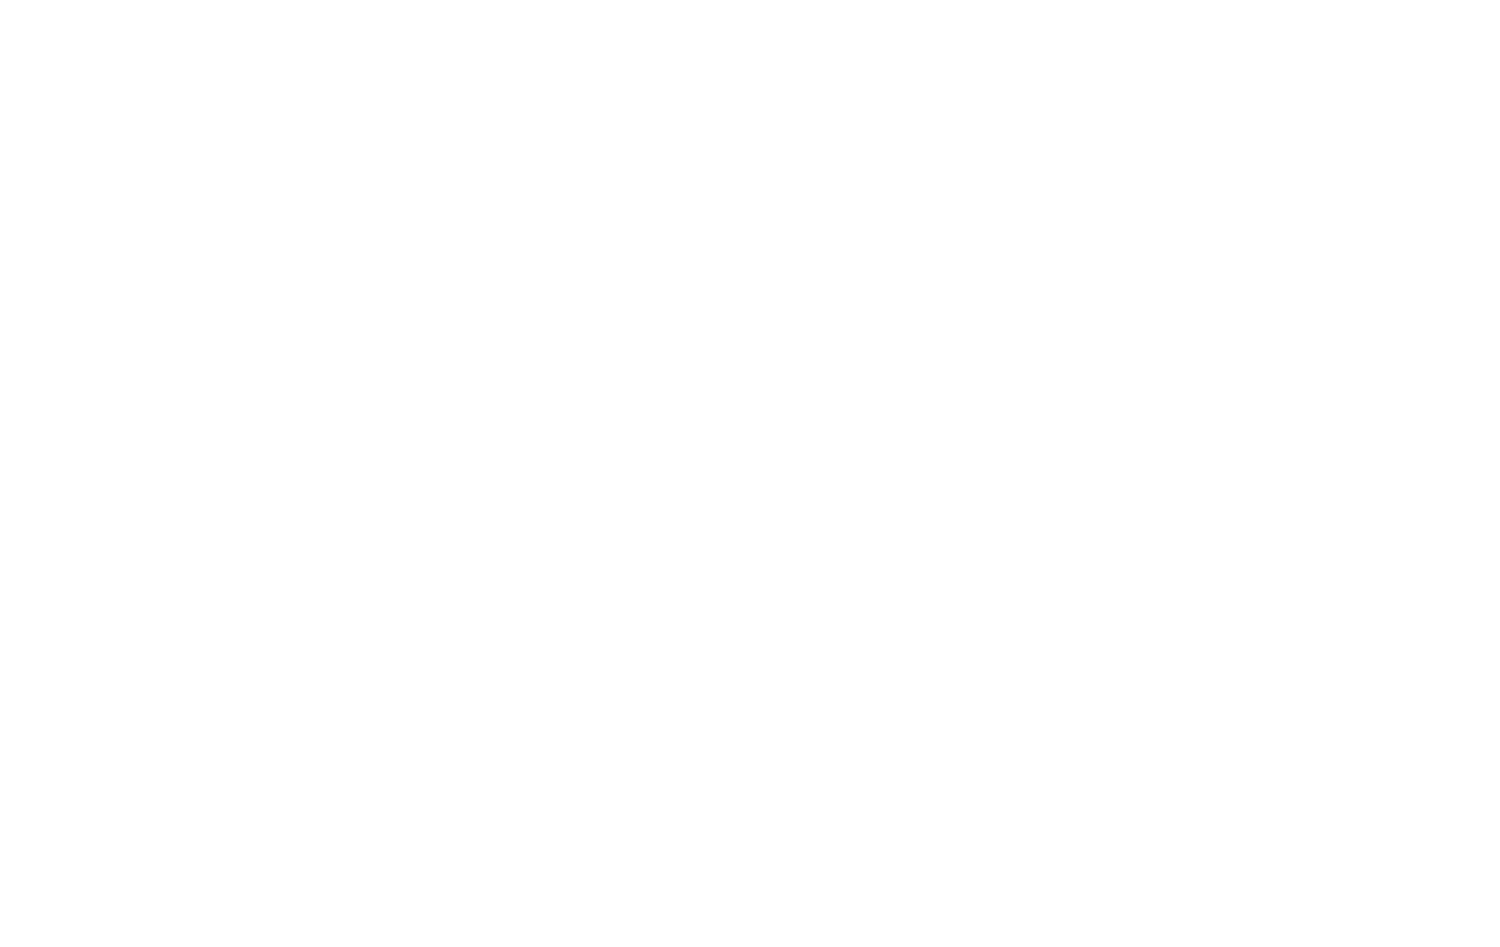 Disability Network Lakeshore